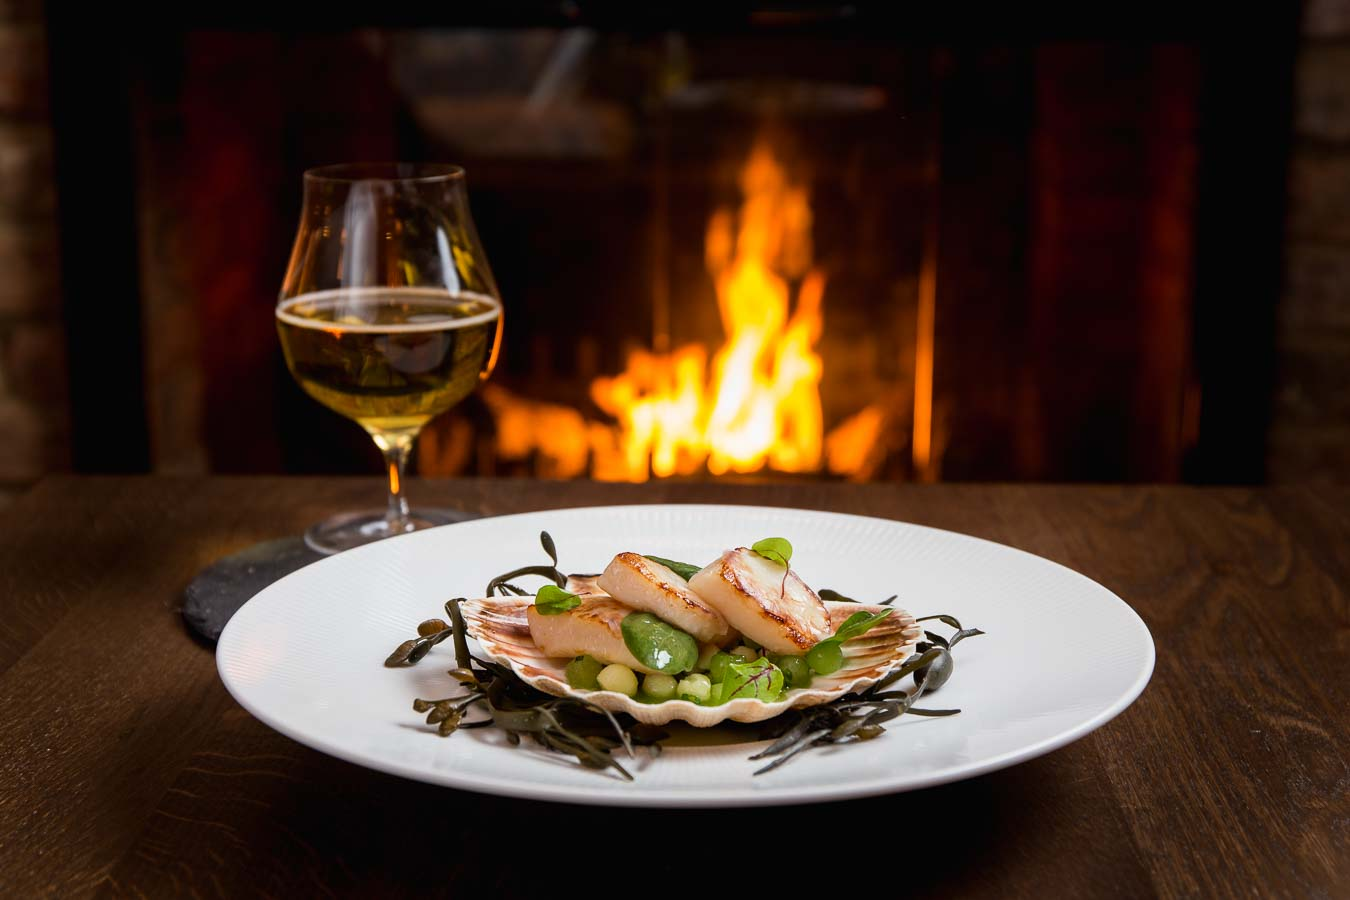 A gastro pub scene of a scollops dish with green herbs, in a large shell, on a bed of seaweed. accompanied by a glass of wine and a roaring fire in the background